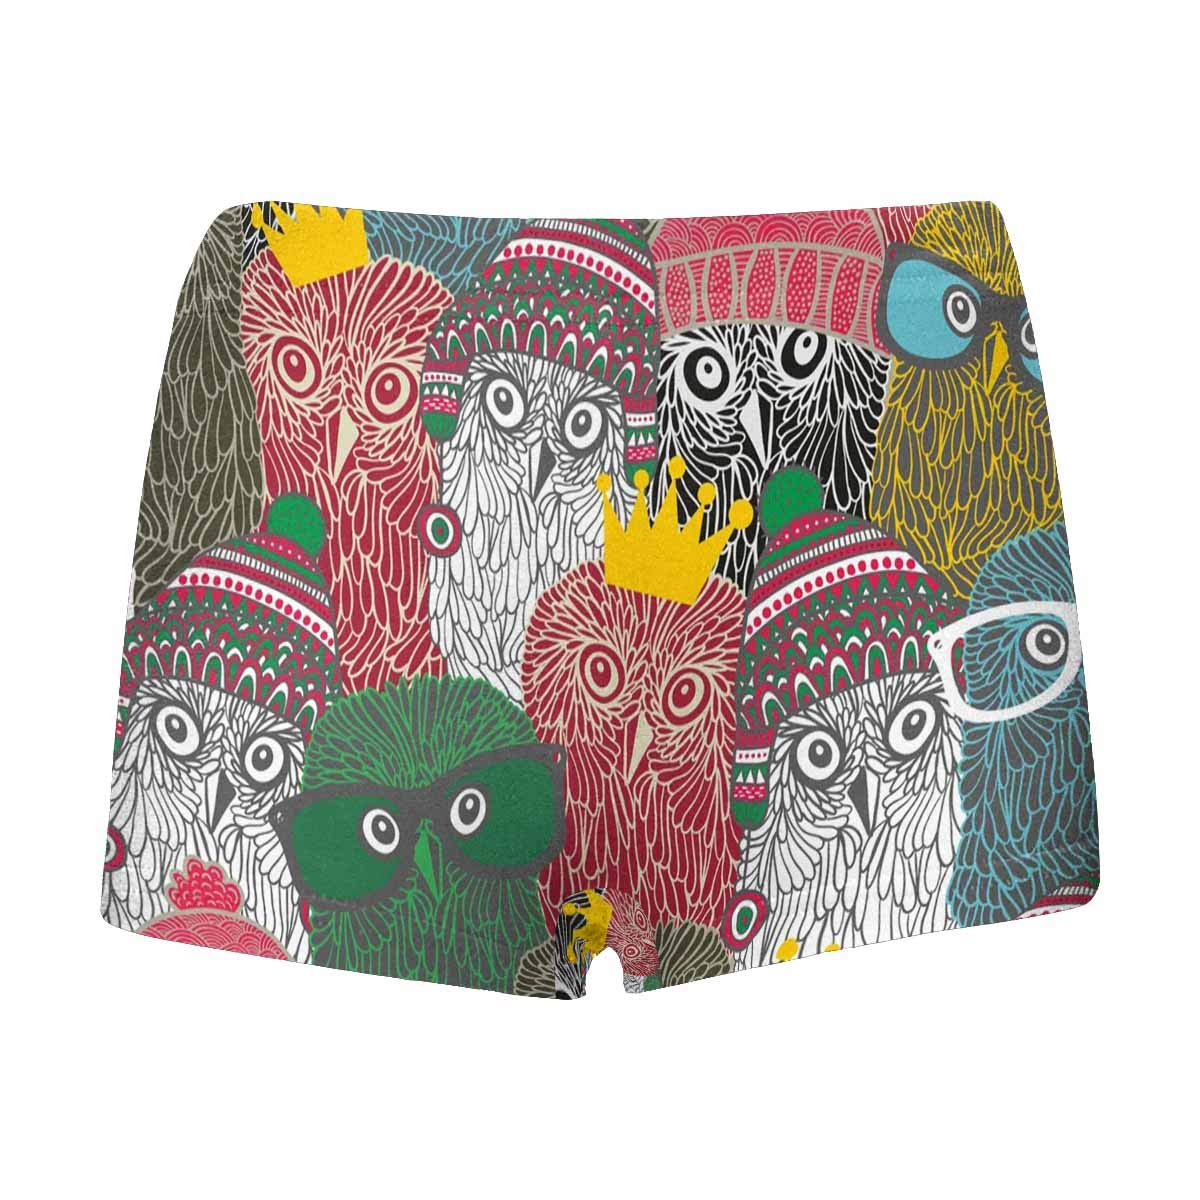 INTERESTPRINT Boys Boxer Brief Underwear 5T-2XL